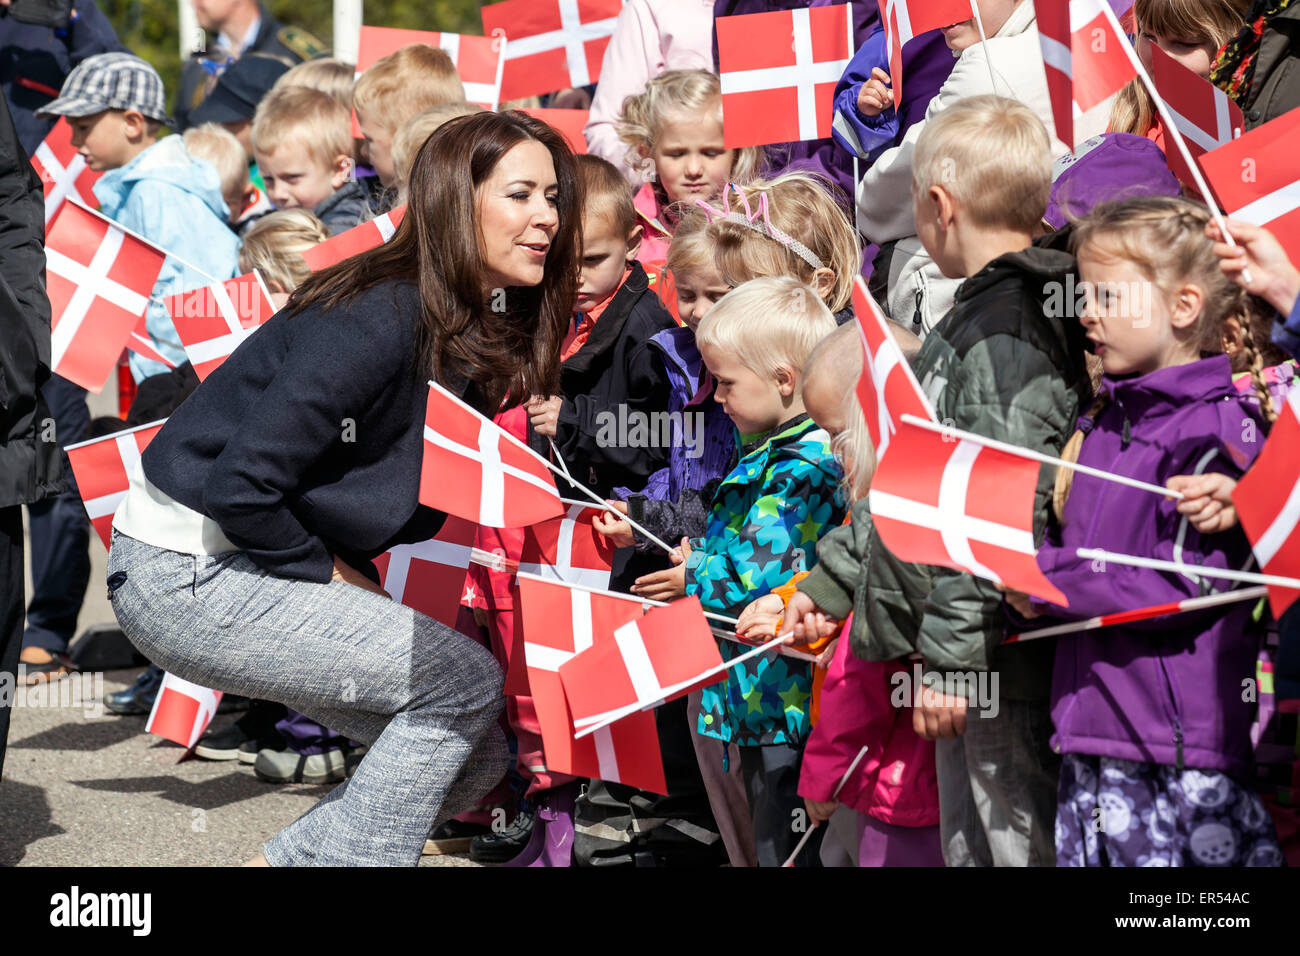 Ruds Vedby, Denmark. 27th May, 2015. Crown Princess Mary visits Ruds Vedby school and is welcomed by kiuds from - Stock Image